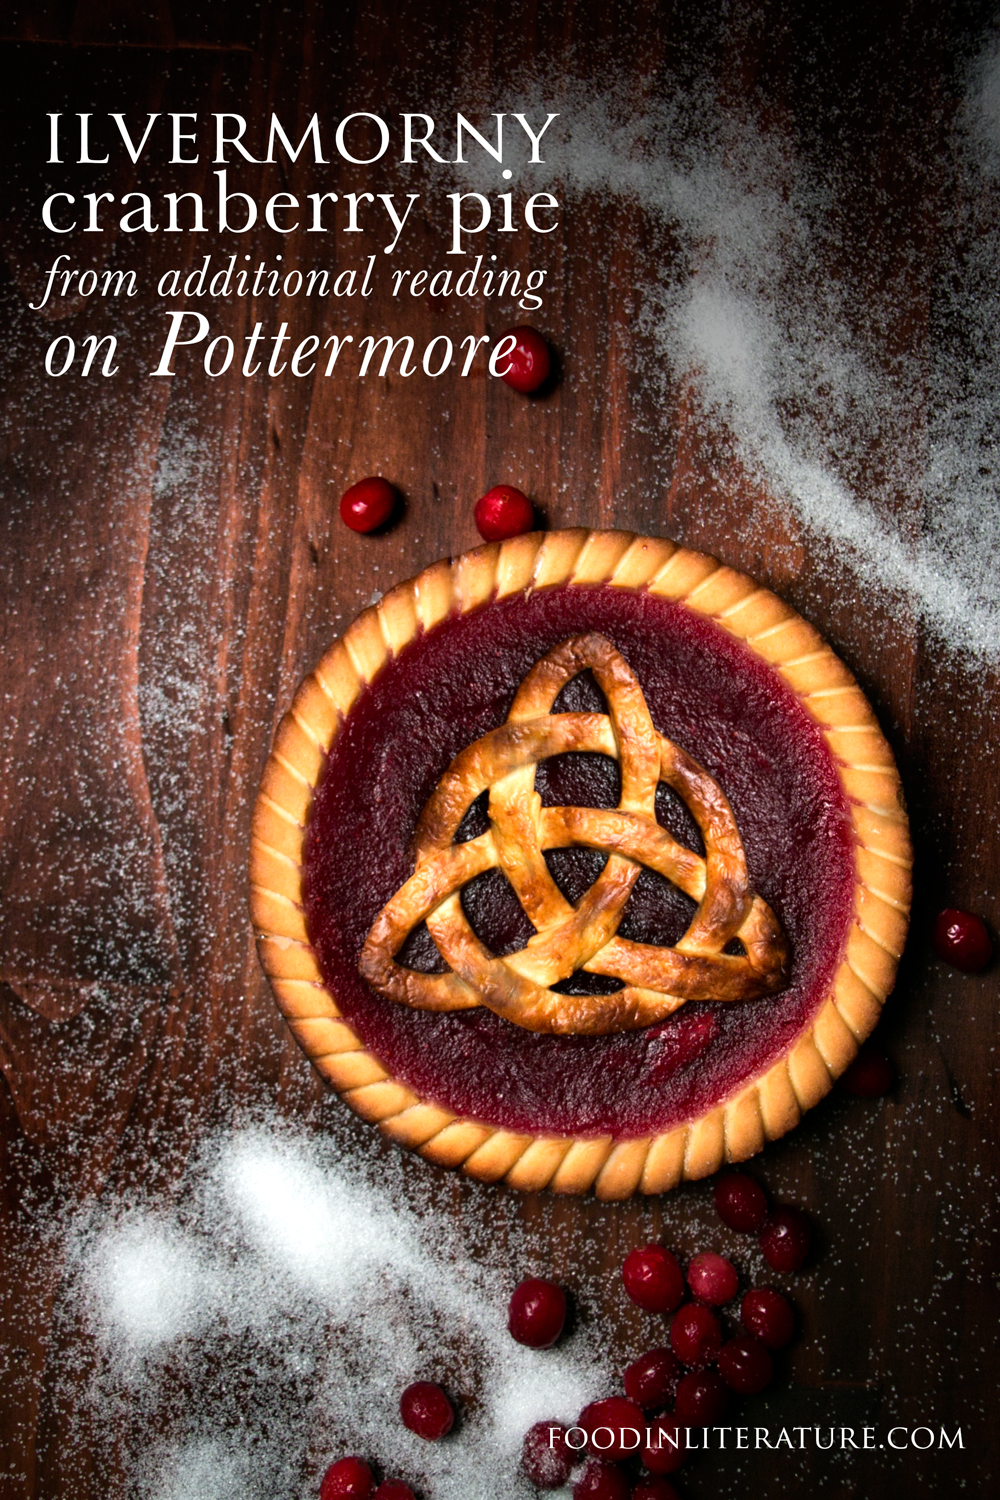 Ilvermorny Cranberry Pie | Pottermore